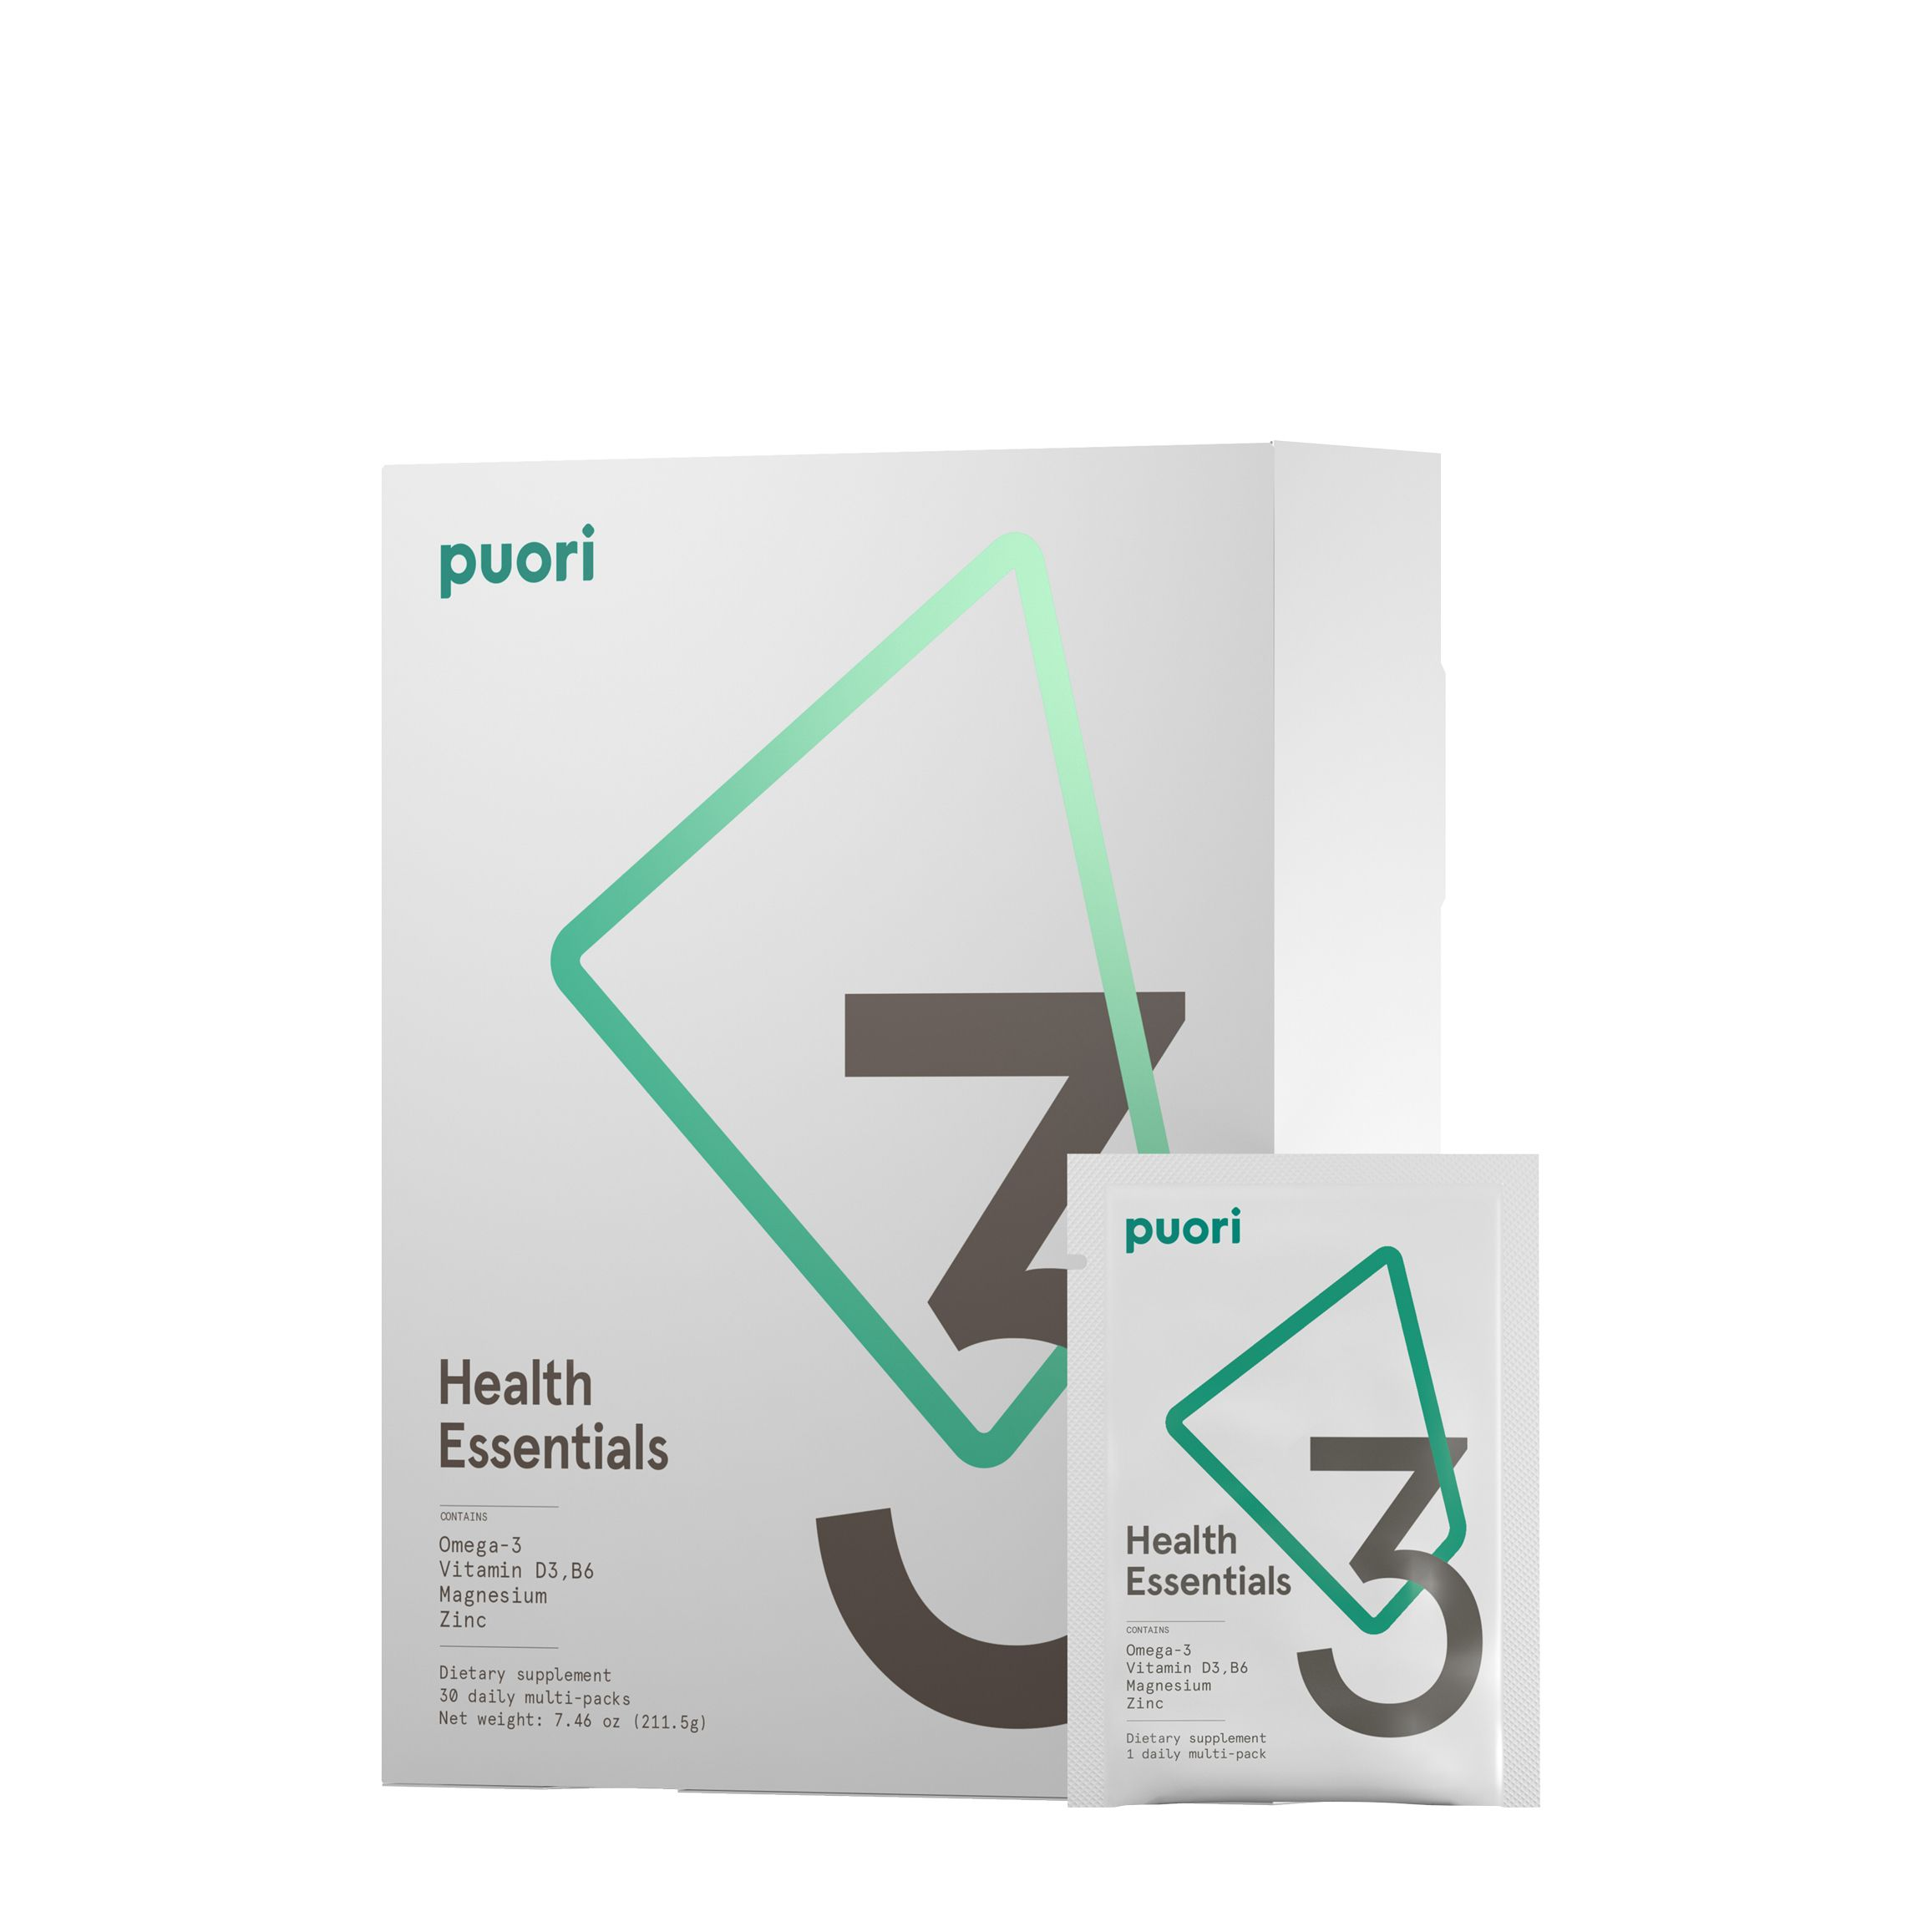 Multi- Vitamins: Puori Daily Packets   Recommended by my functional nutritionist. I take these daily paired with beef liver, a B Vitamin for Stress, and a daily probiotic.